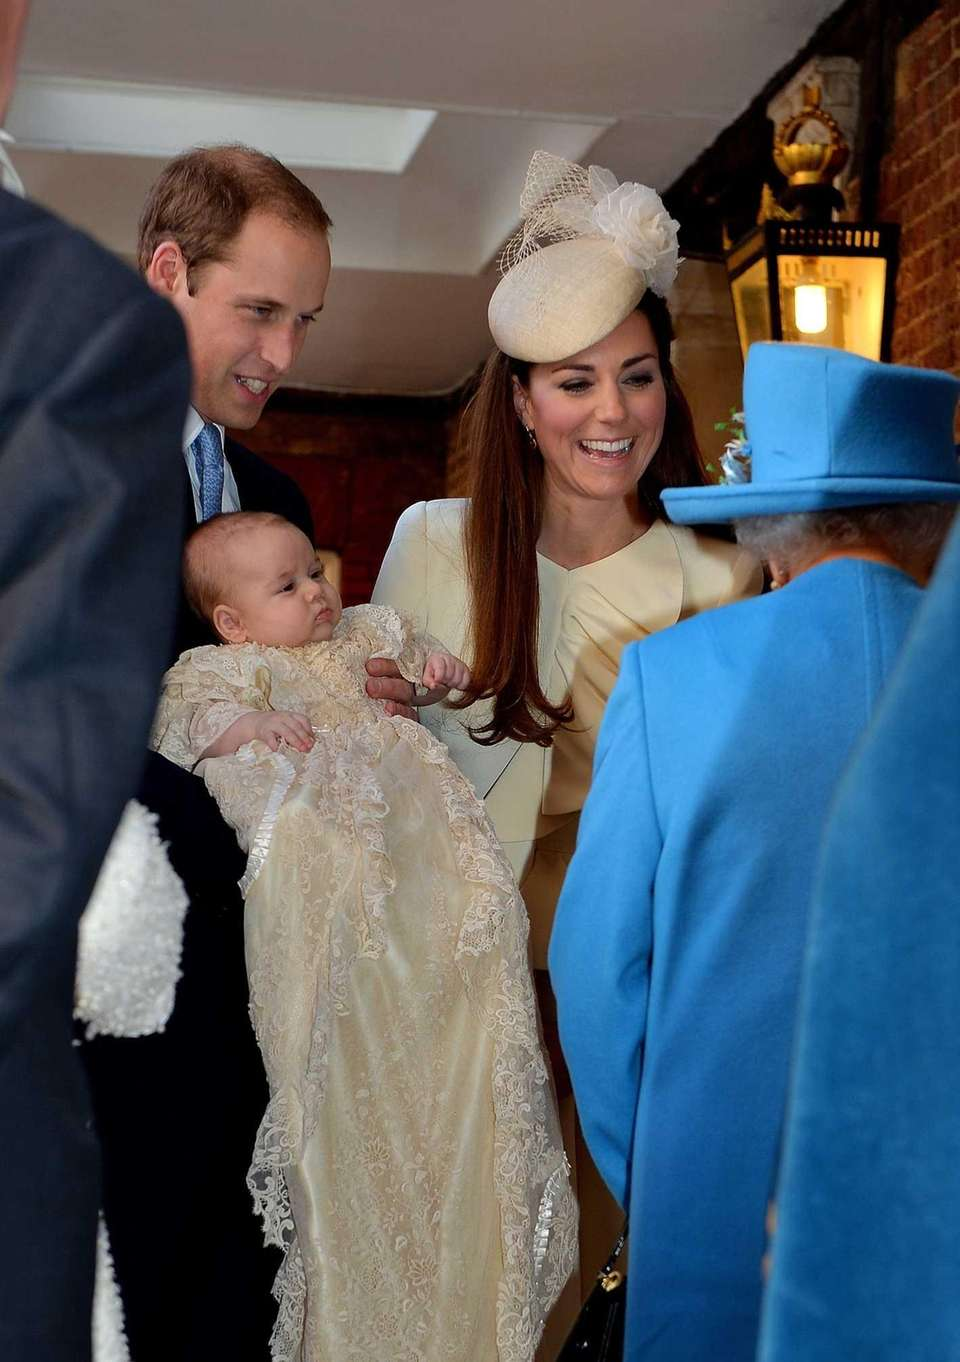 Prince William, Duke of Cambridge and Catherine, Duchess